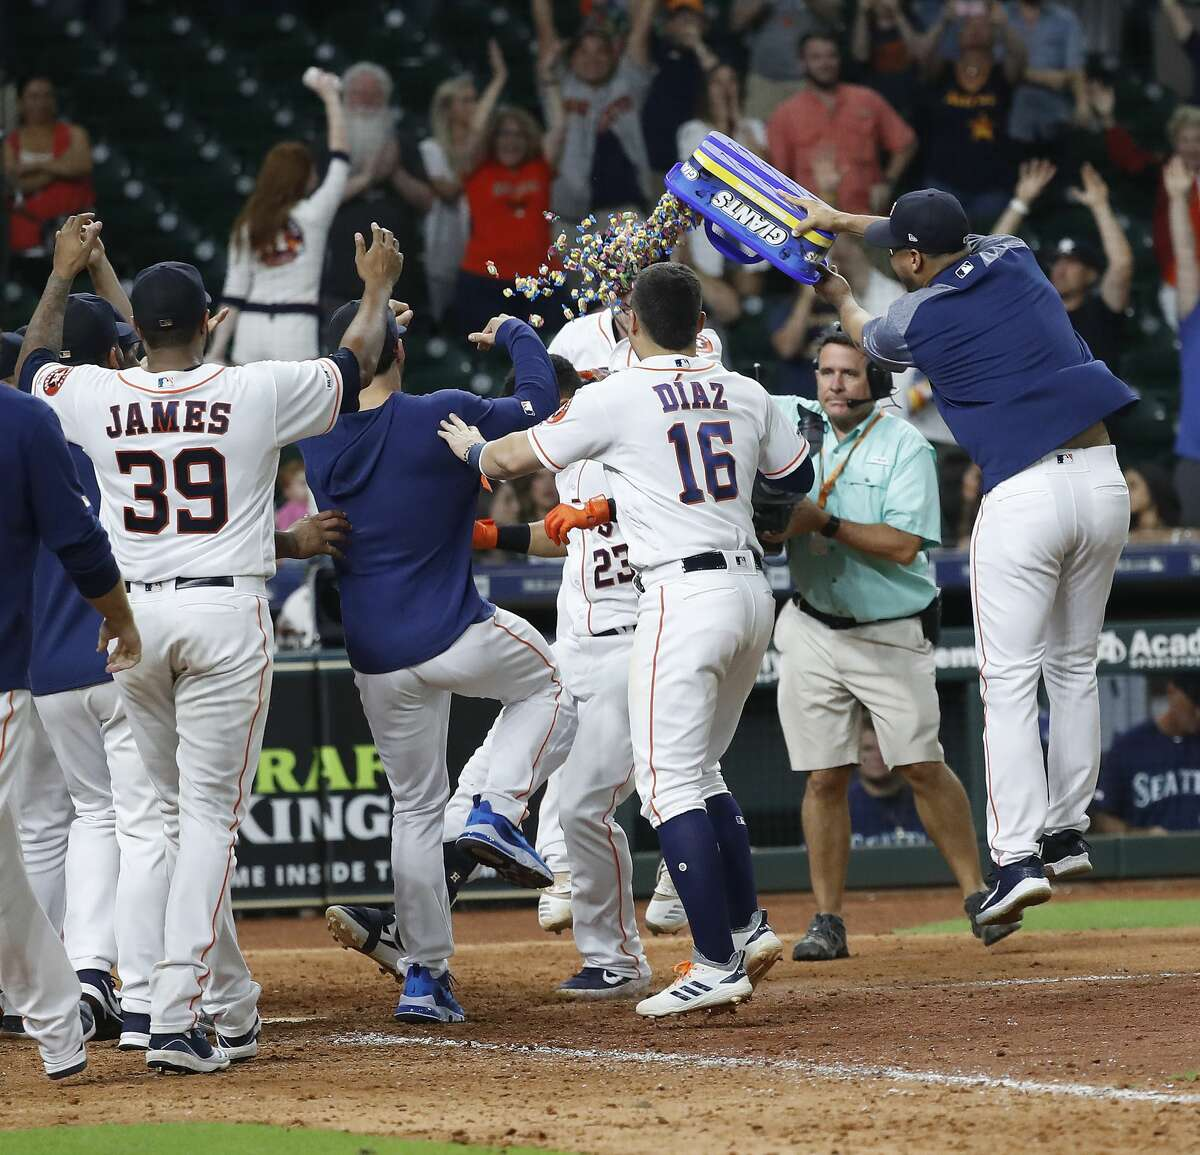 Houston Astros Michael Brantley (23) celebrates with teammates after his walk off home run to beat the Seattle Mariners 11-9 during the thirteenth inning of an MLB game at Minute Maid Park, Thursday, September 5, 2019, in Houston.